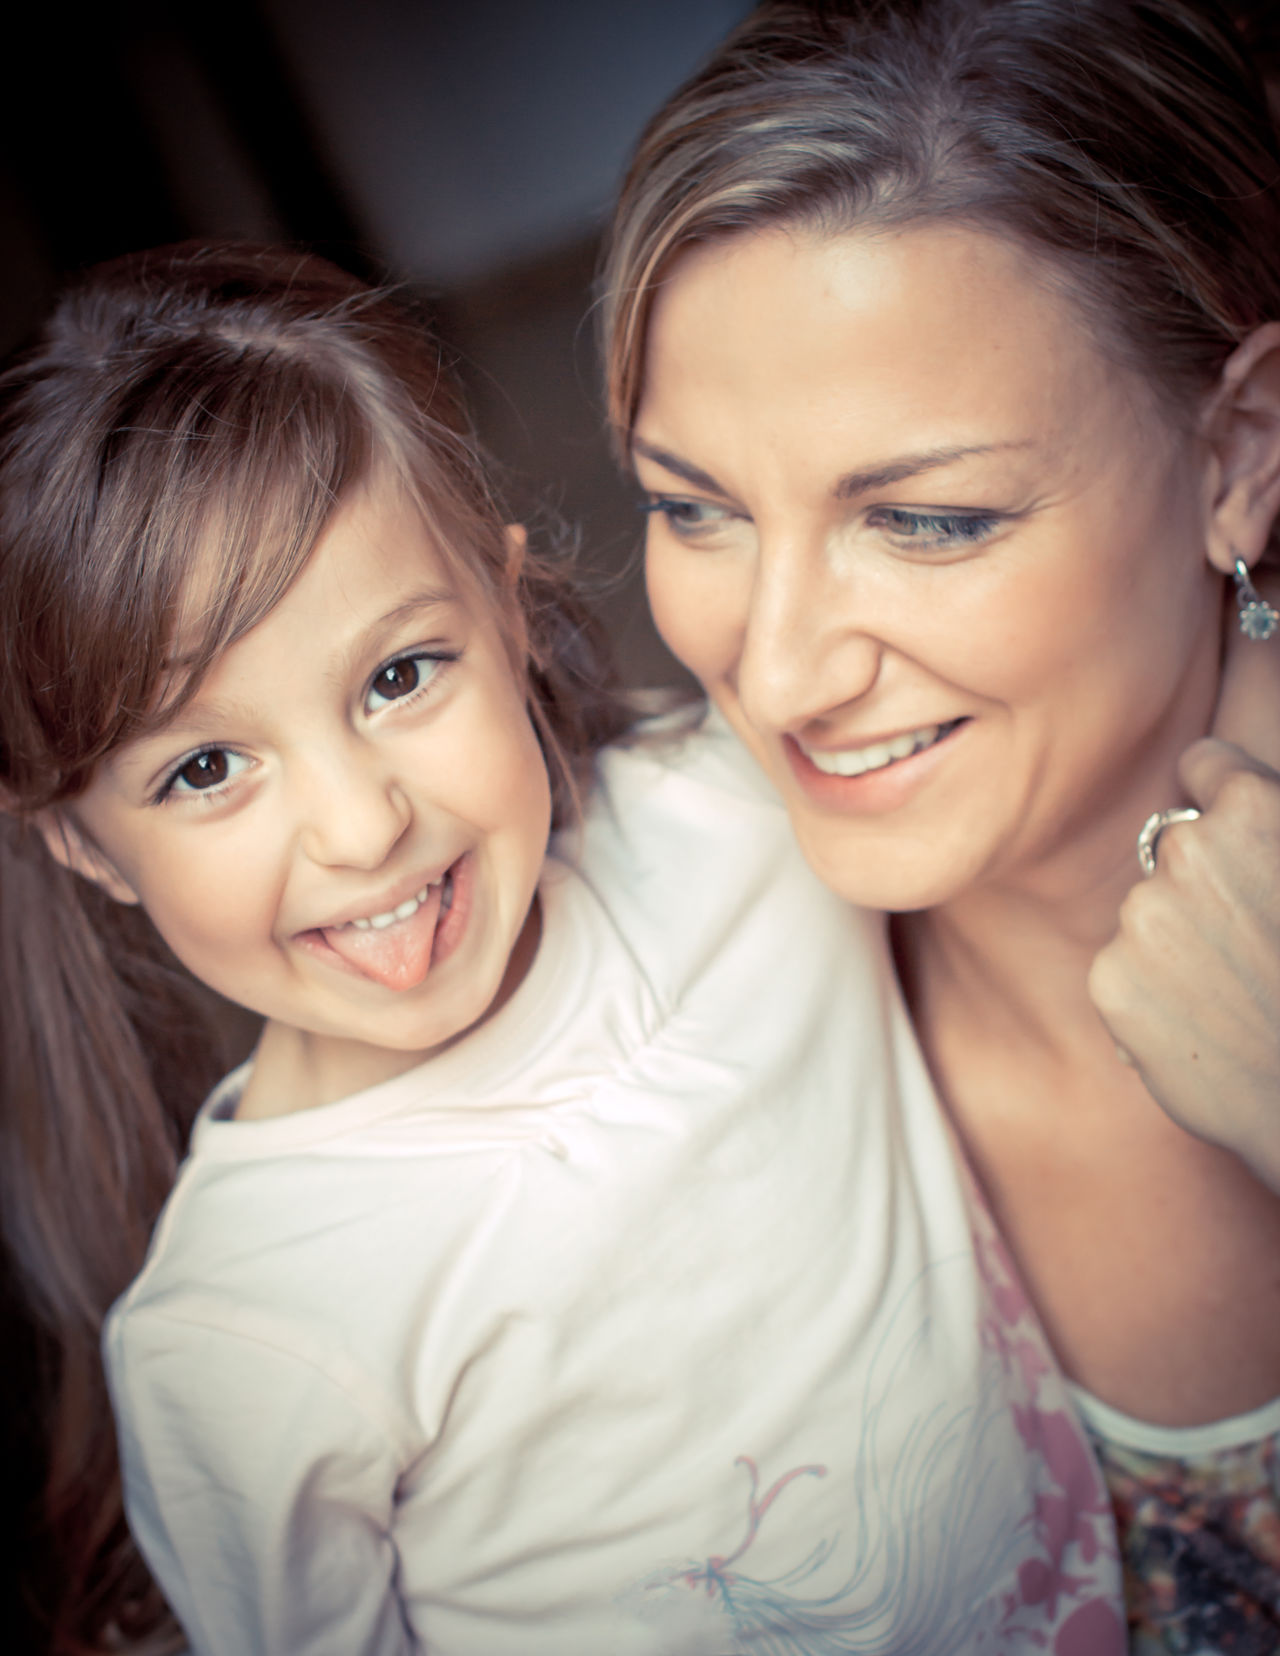 Bonding Cheerful Childhood Close-up Daughter Daughter And Mother Daughters Day Family Girls Happiness Indoors  Looking At Camera Love Mother People Portrait Real People Smiling Togetherness Tounge Out  Two People